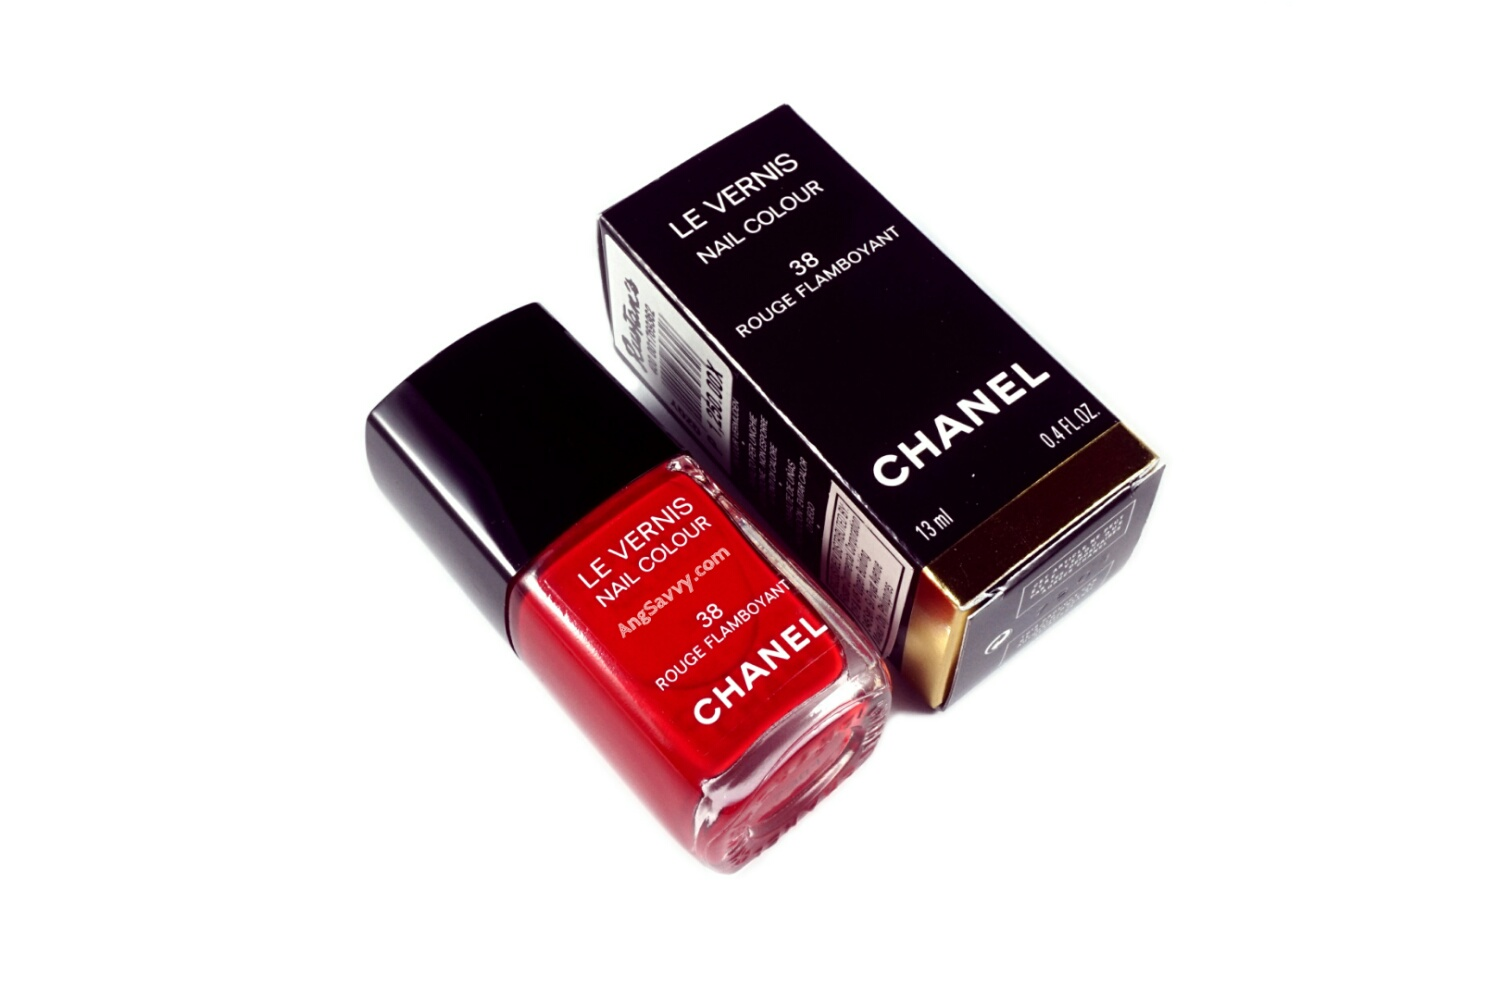 Chanel Rouge Flamboyant (38) Le Vernis